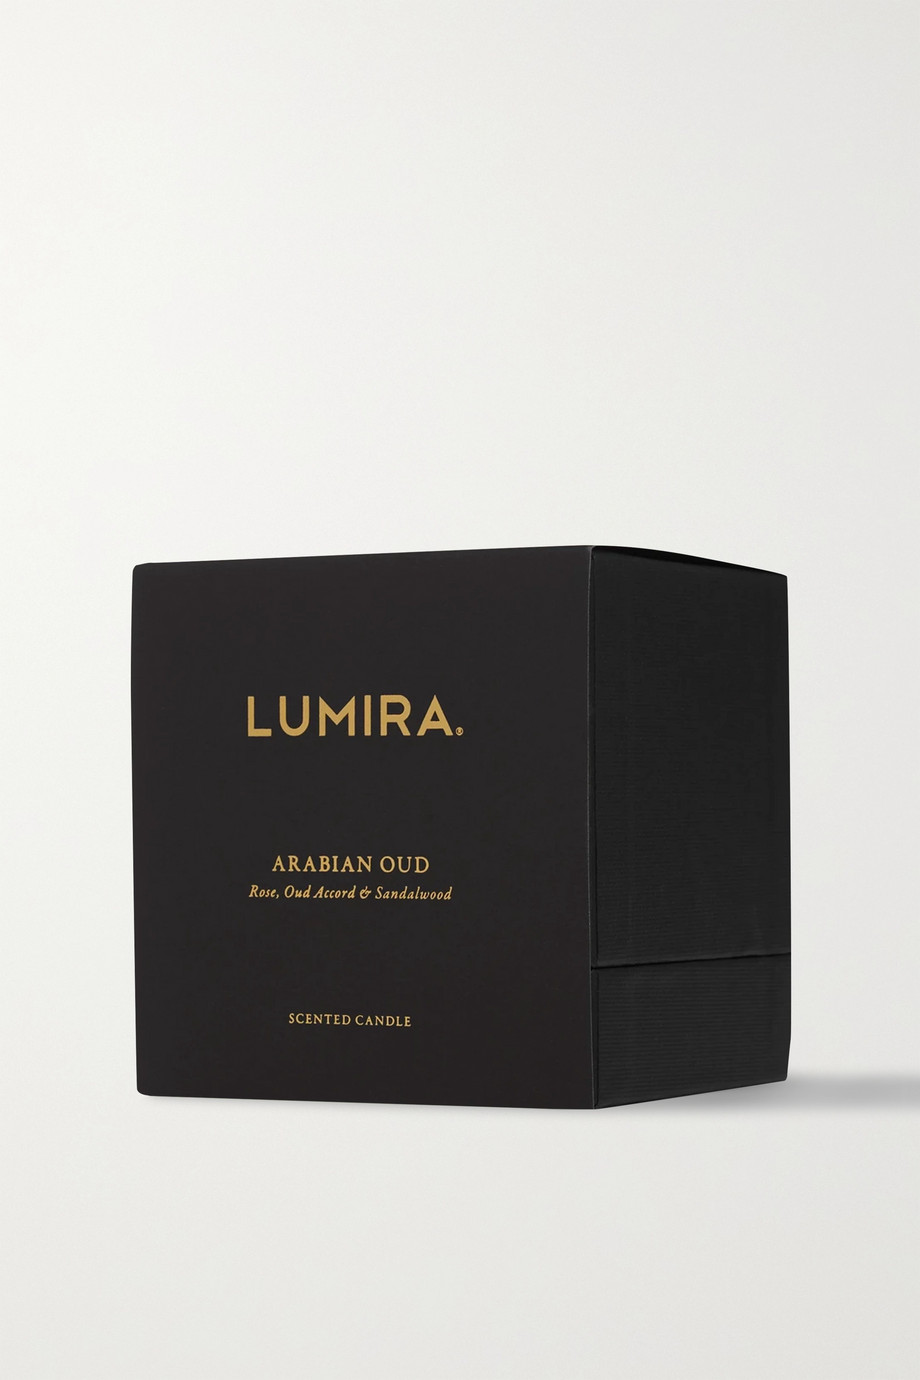 LUMIRA Arabian Oud scented candle, 300g